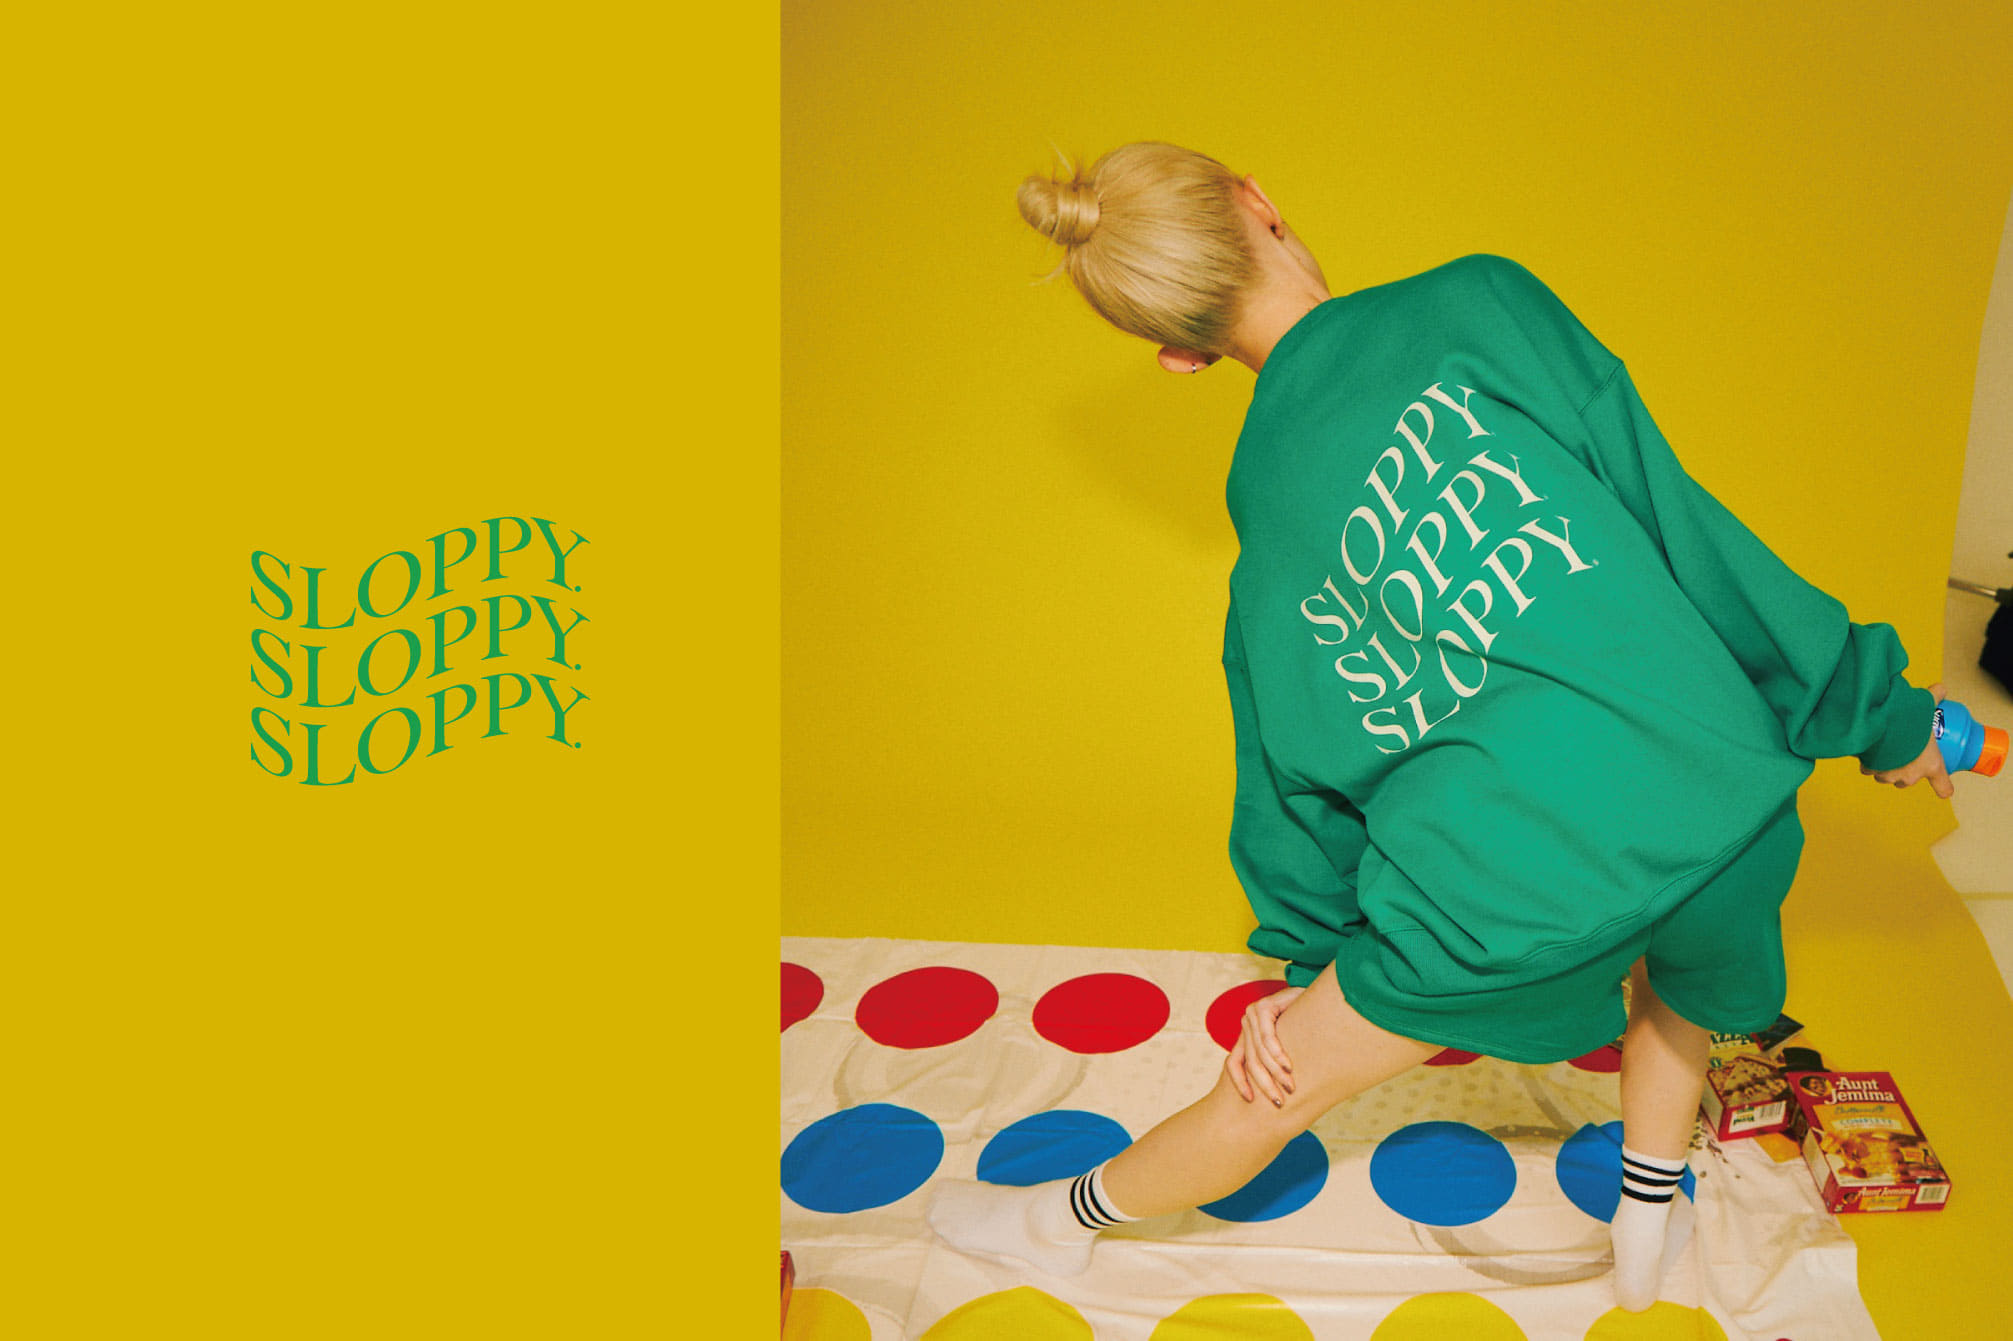 WHO'S WHO gallery 【SLOPPY】new items